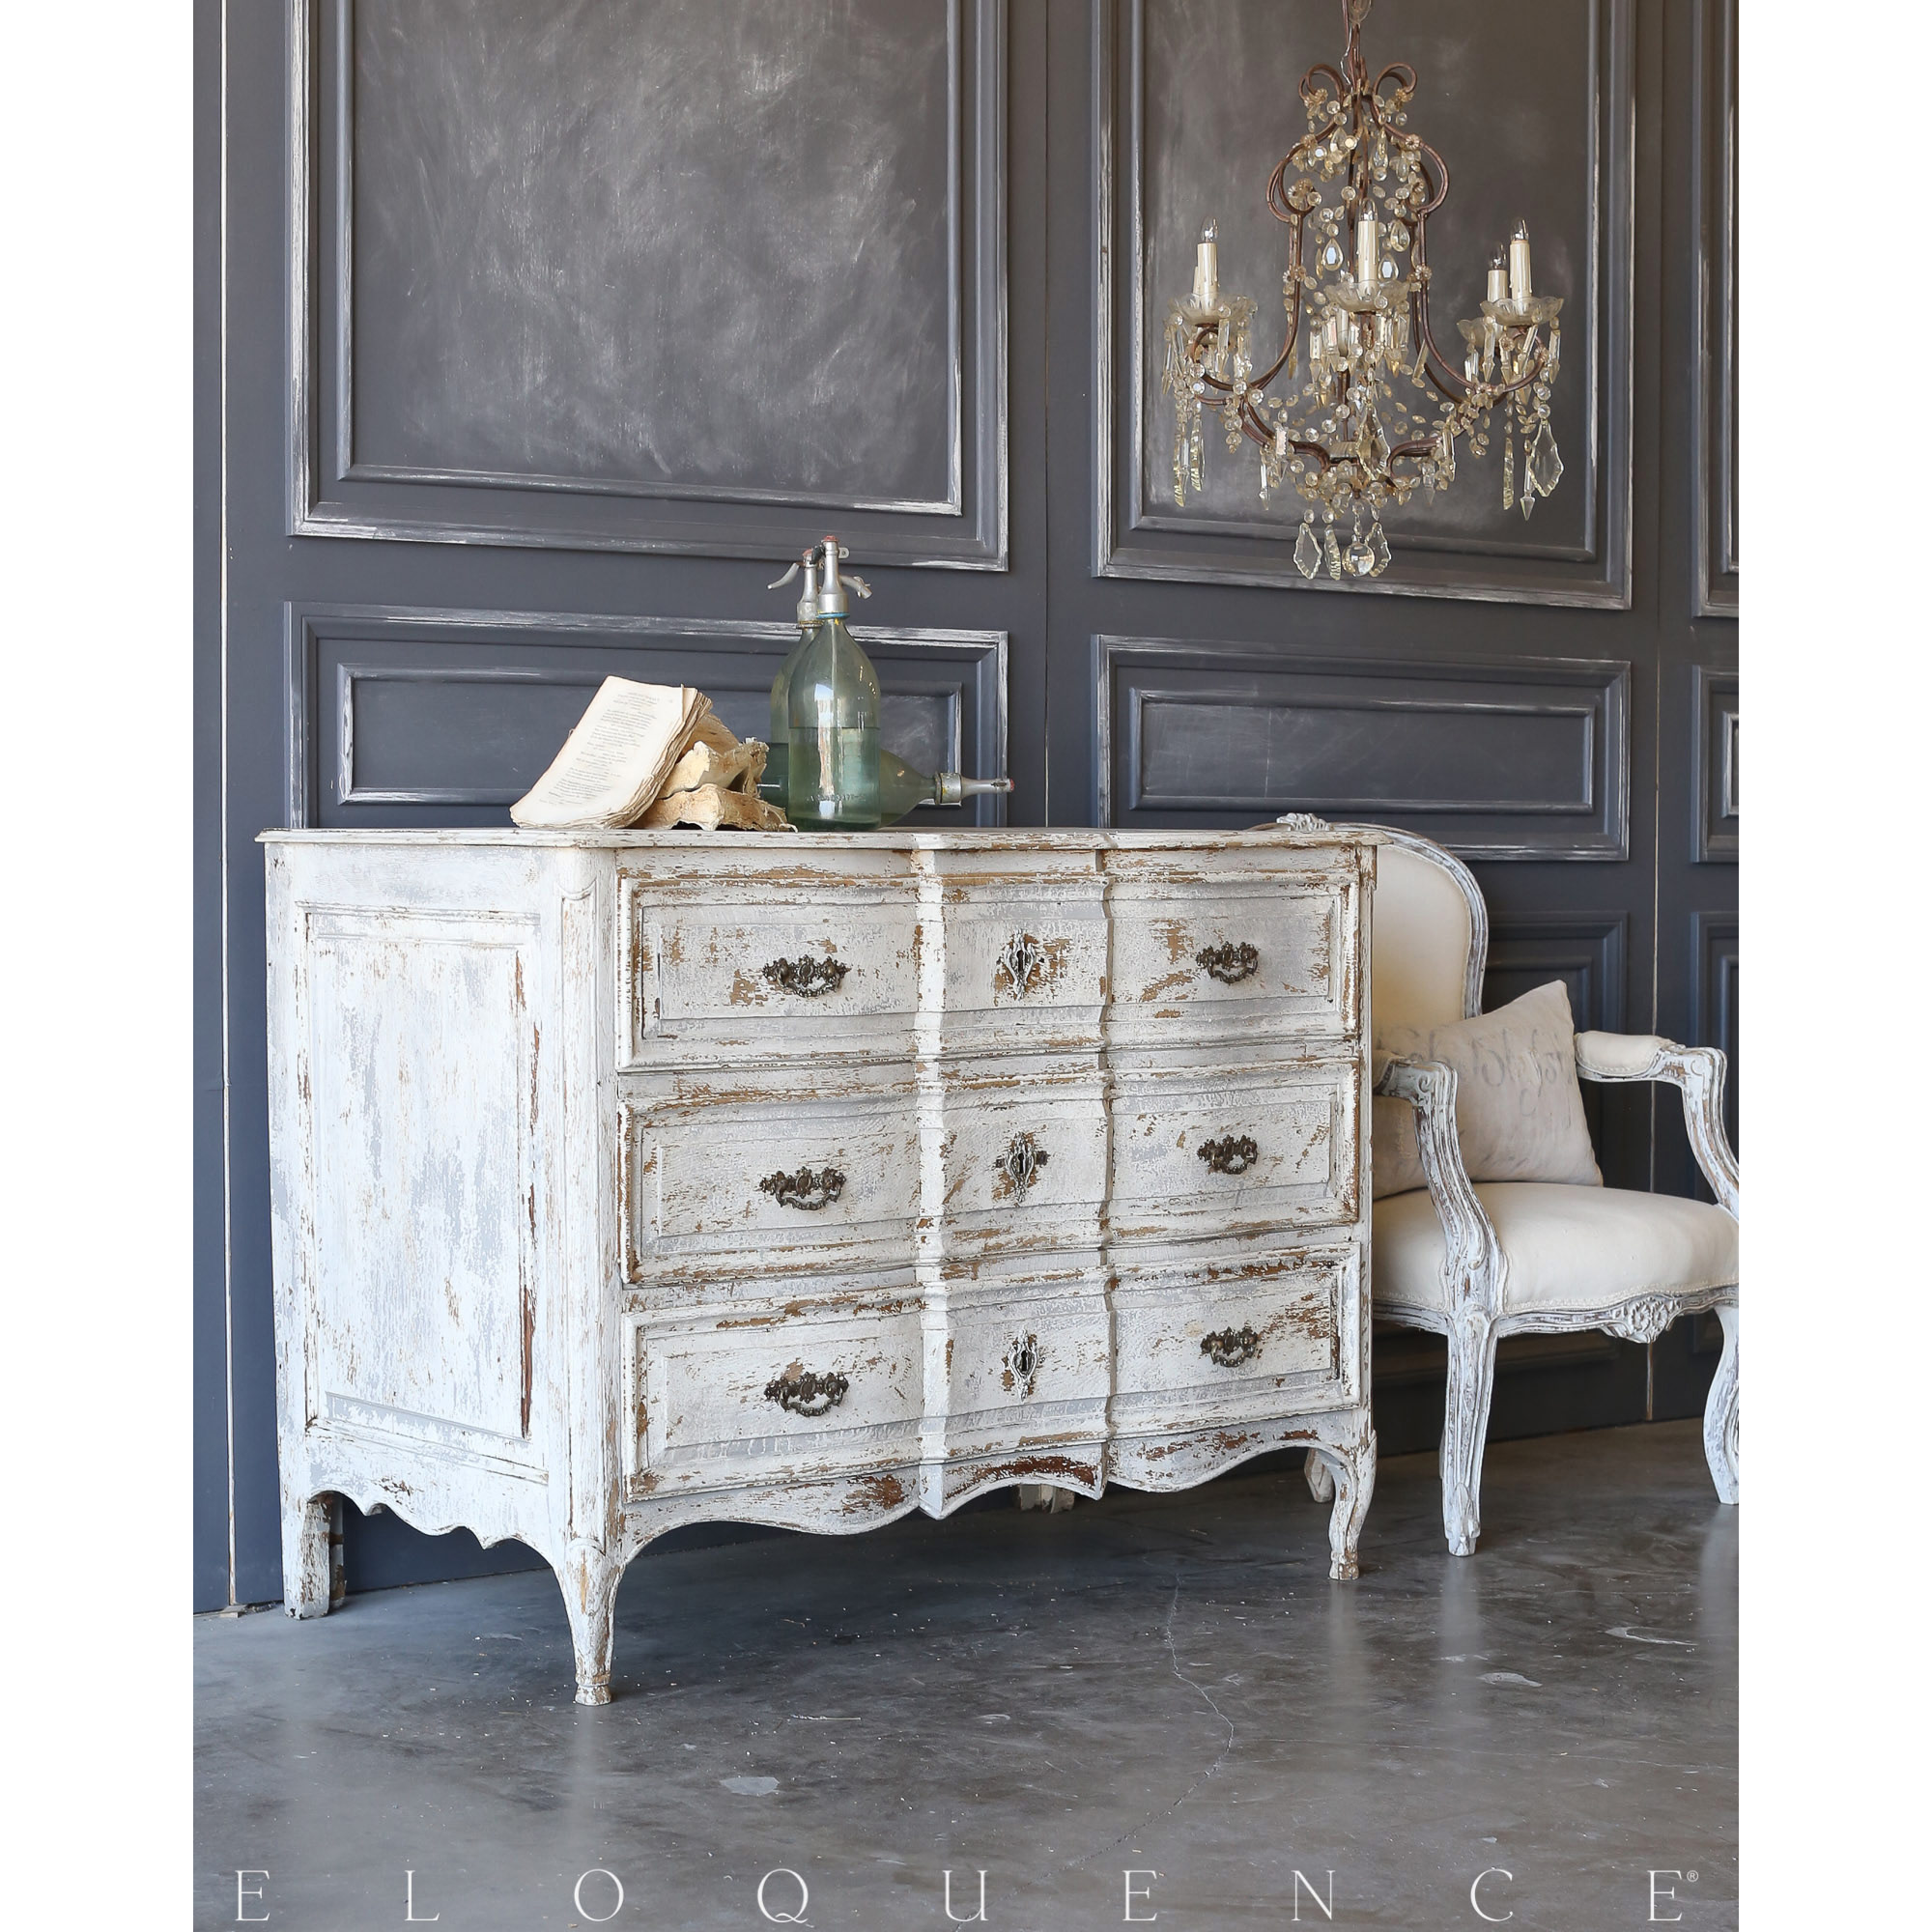 Eloquence® Antique French Louis XV Commode: 1820